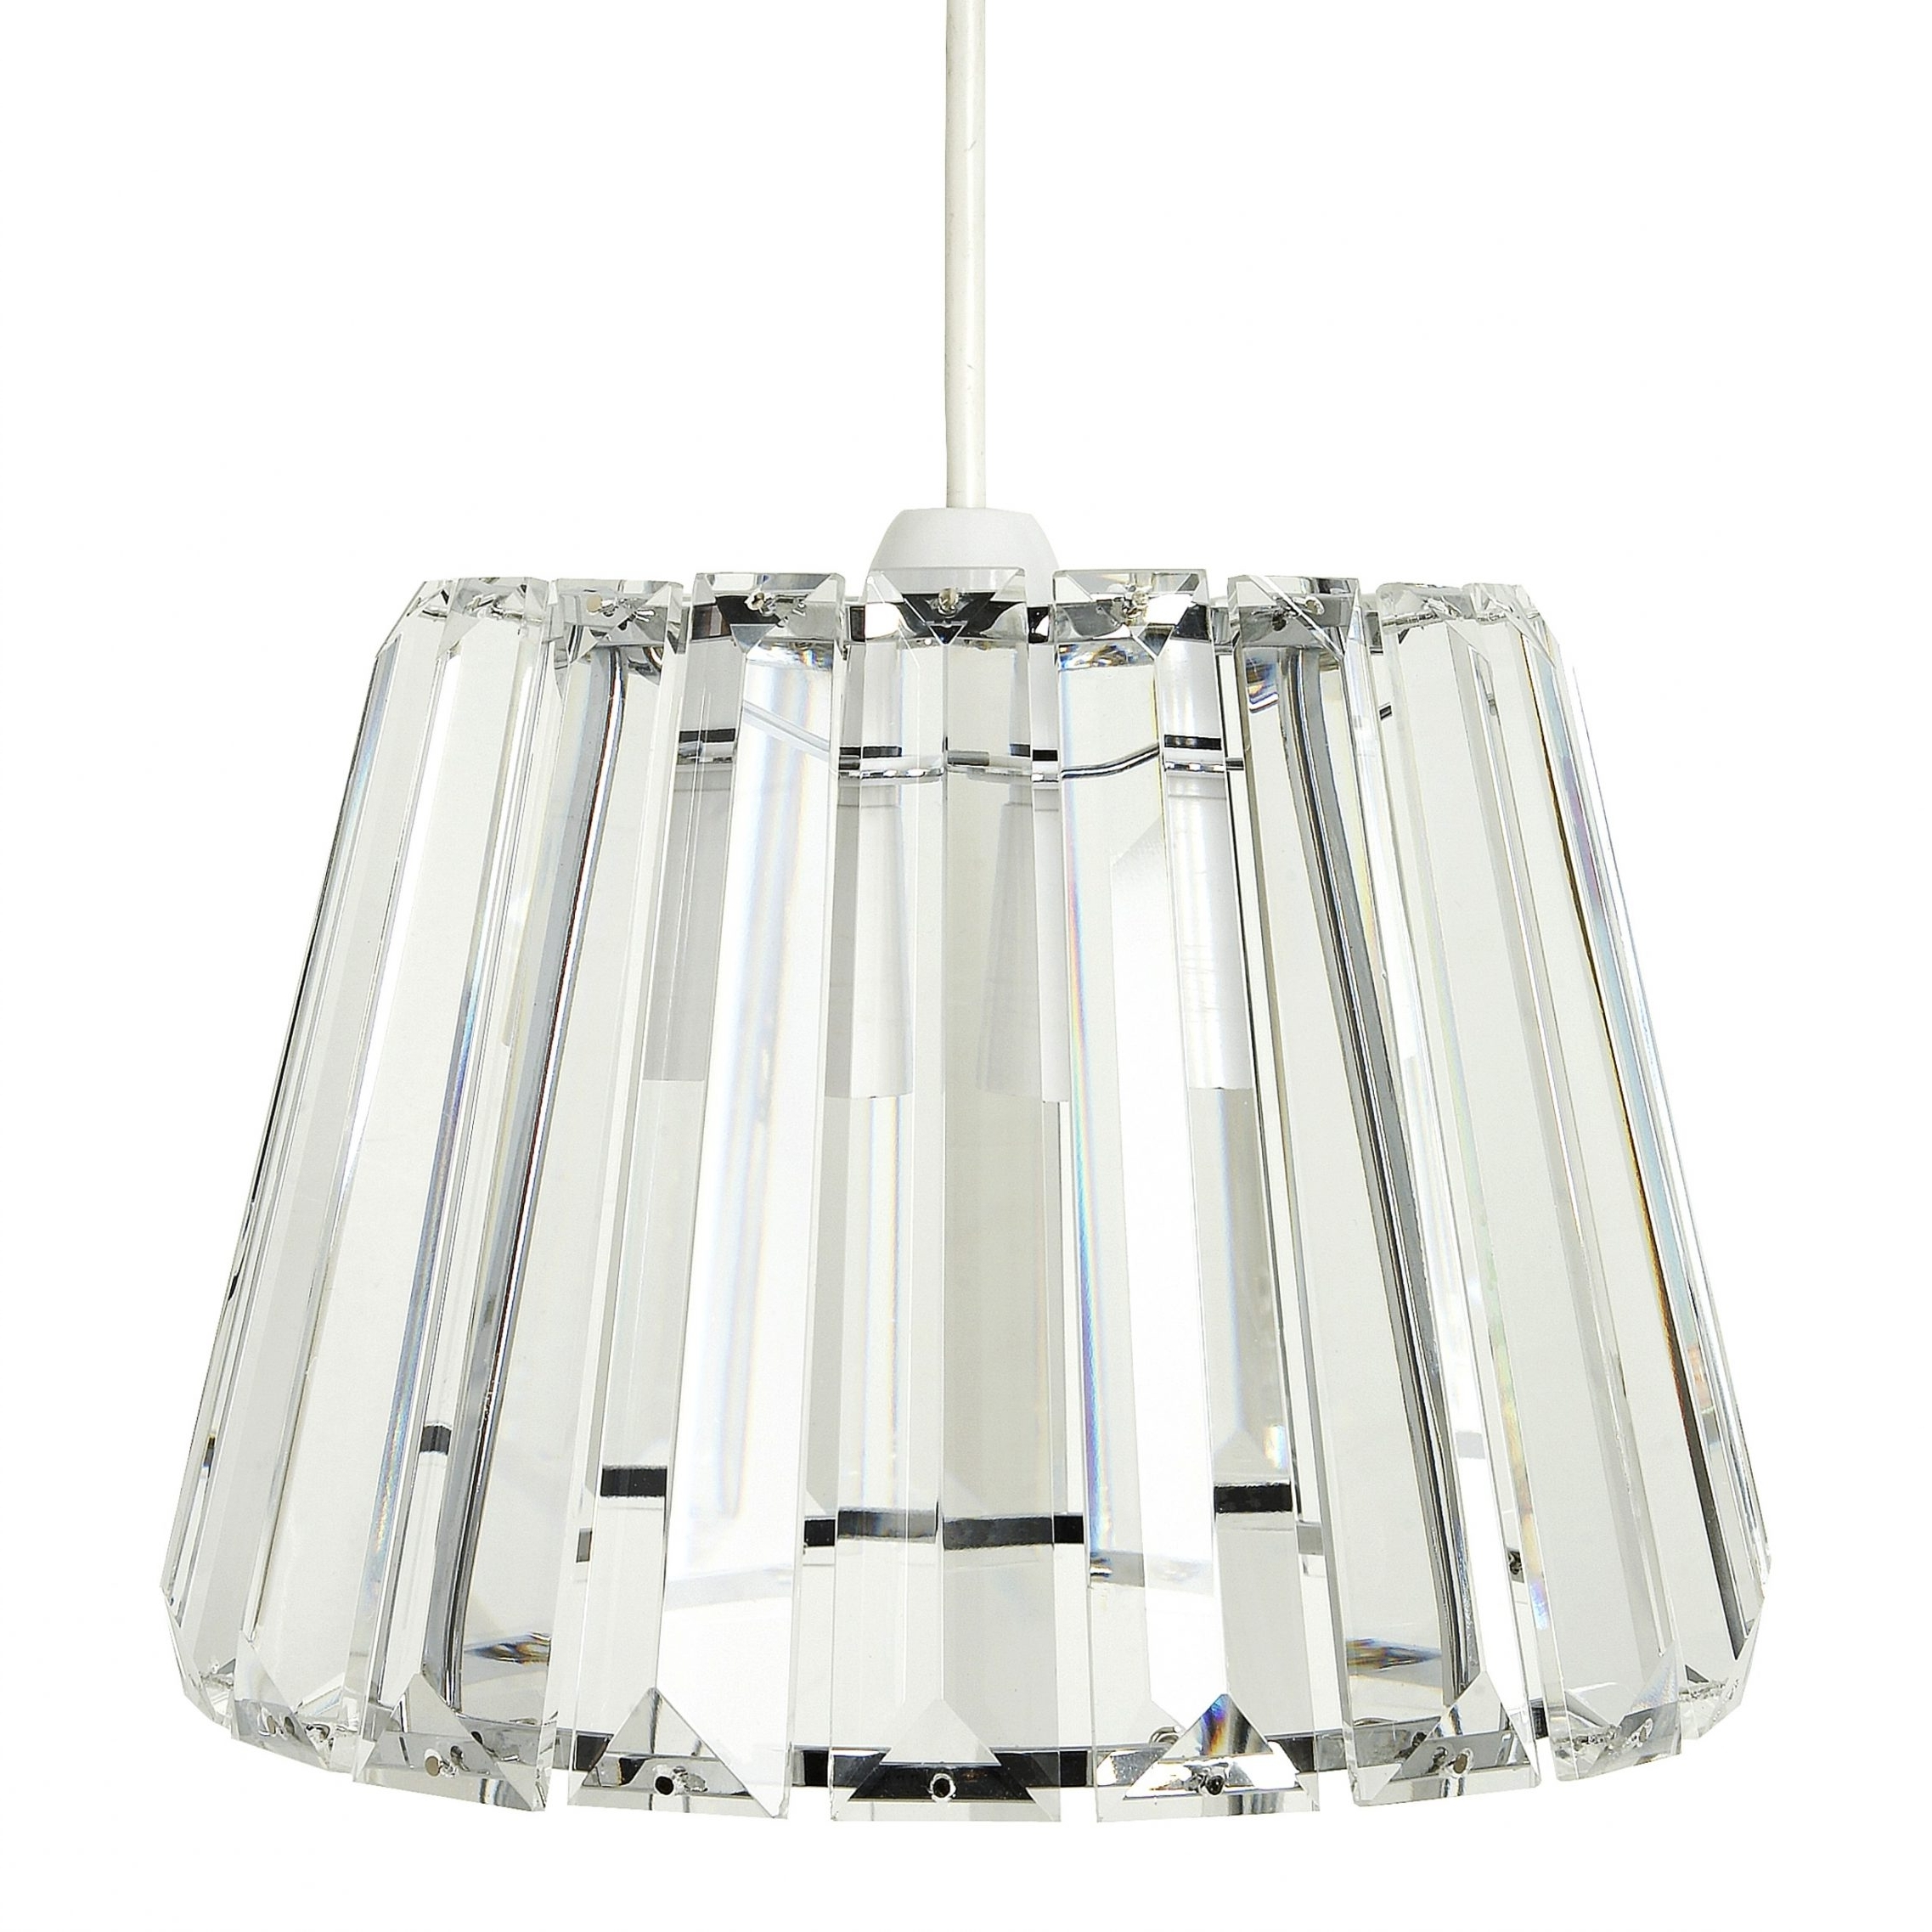 2019 Clip On Chandelier Lamp Shades With Regard To Clip On Chandelier Shades (View 3 of 20)